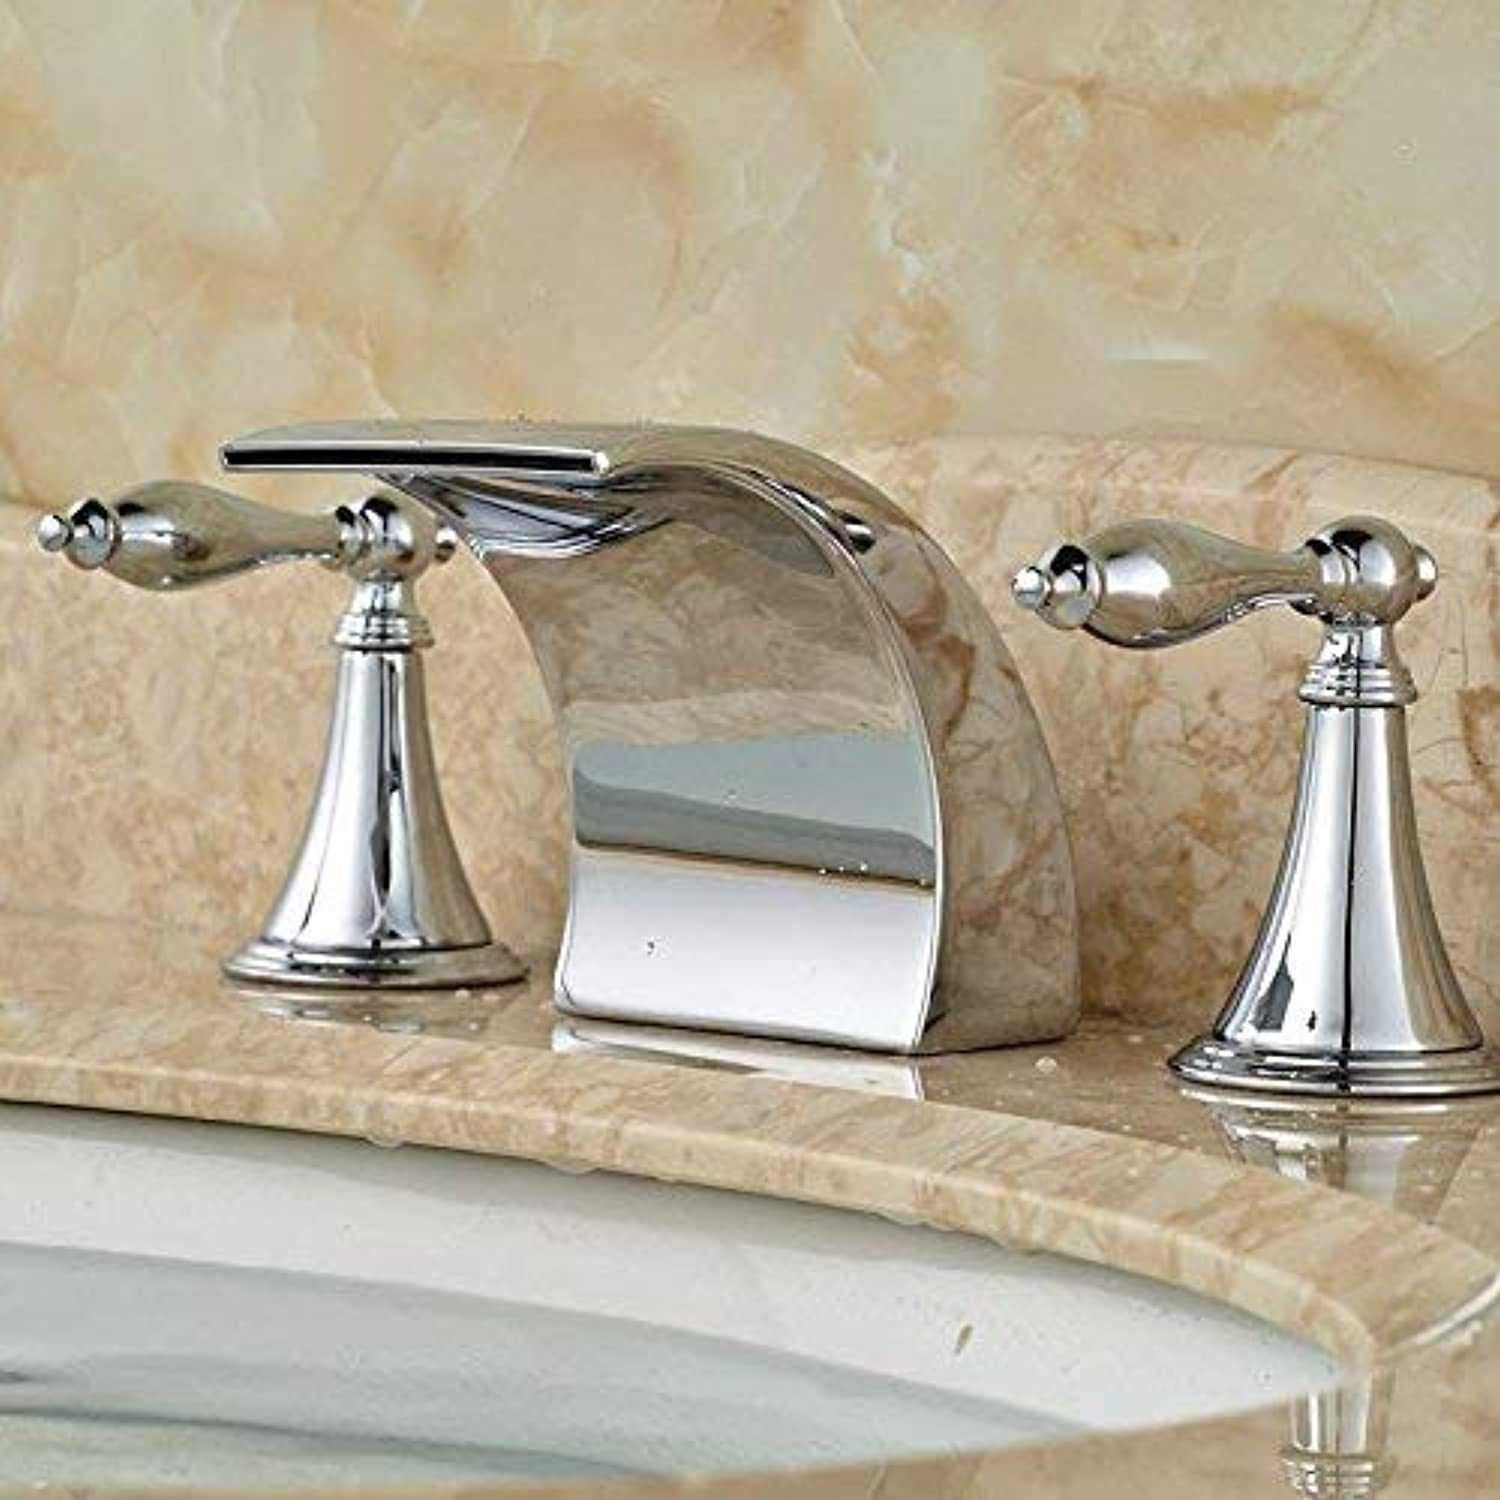 Oudan Simple waterfall faucet warm basin faucet waterfall faucet G12 (color   G1 2)